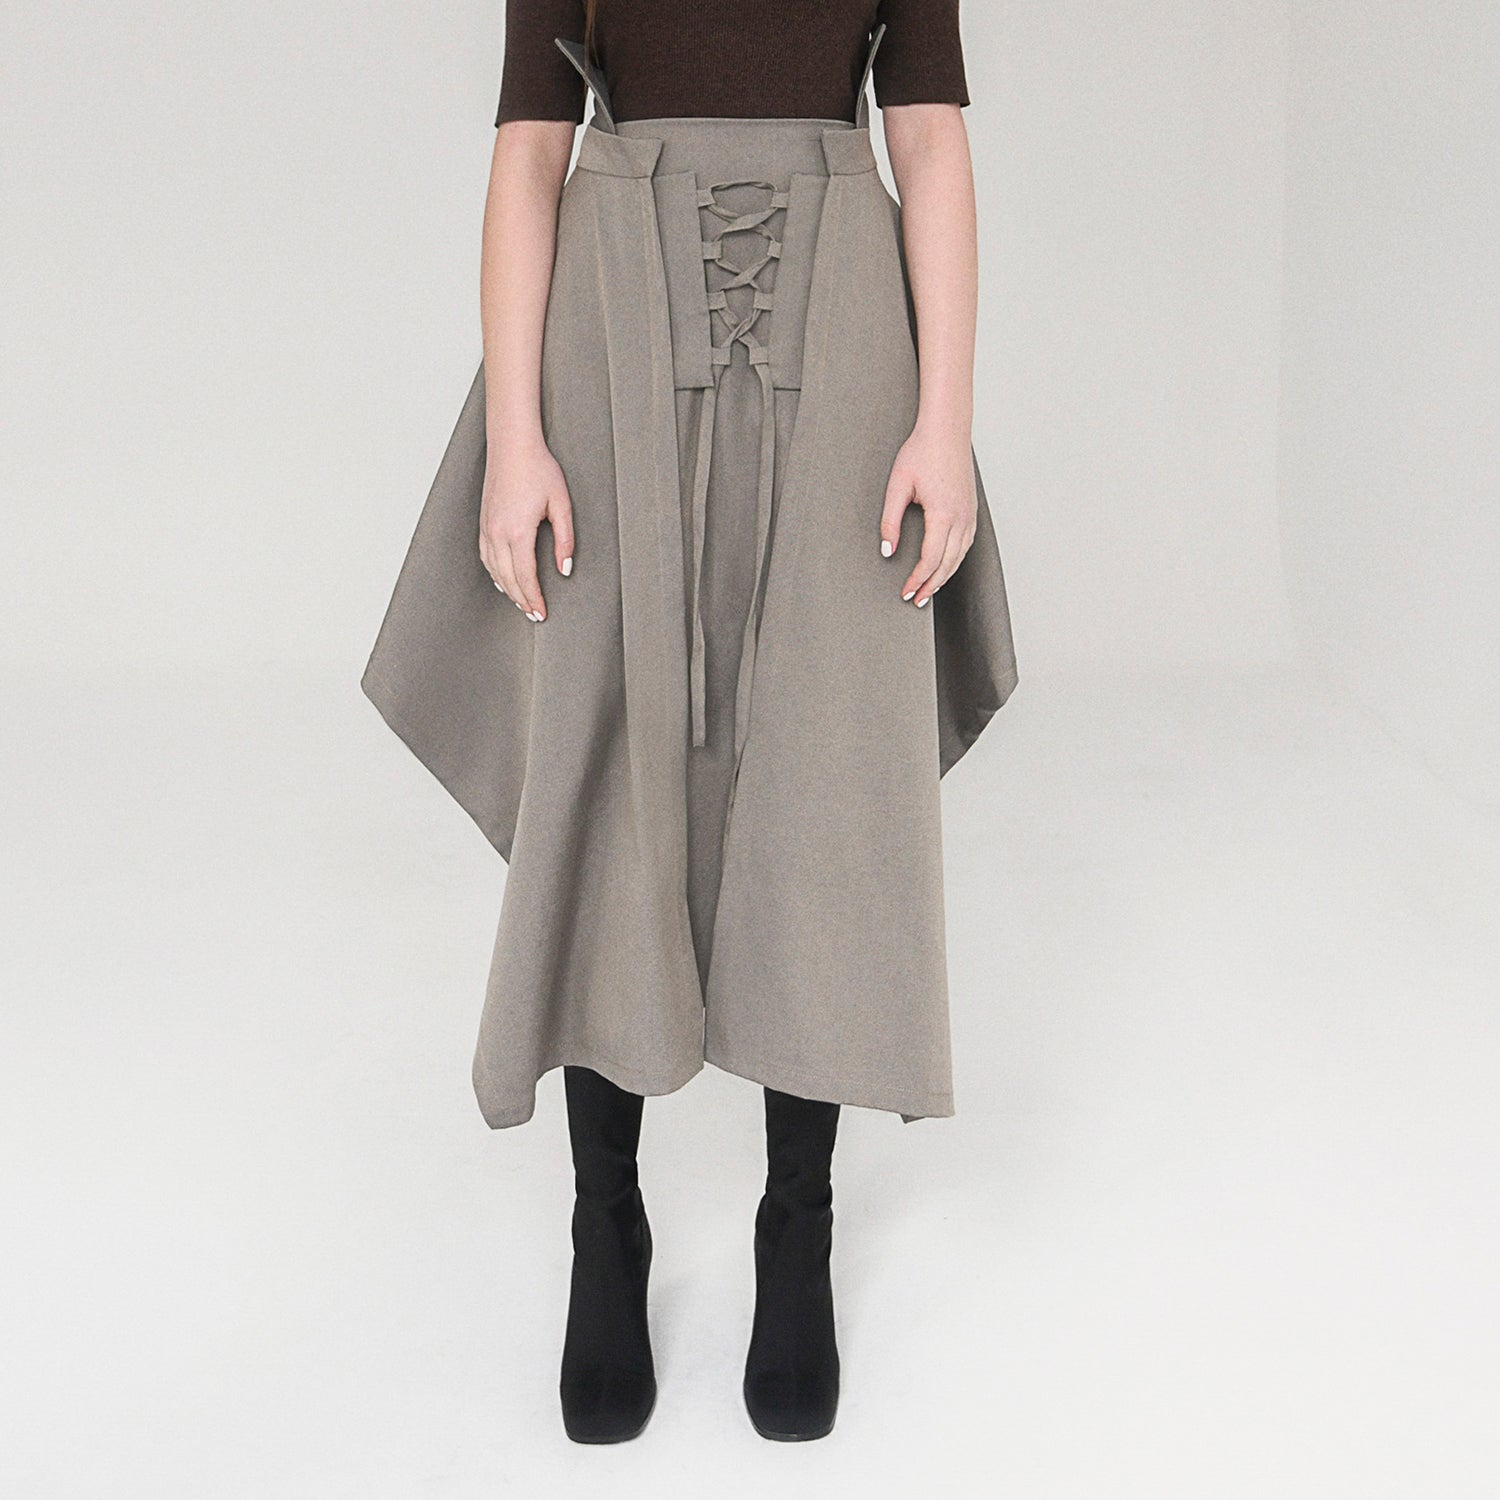 <b>N°5</b> <p><b>Estelle Skirt</b> <p></b>deep stone